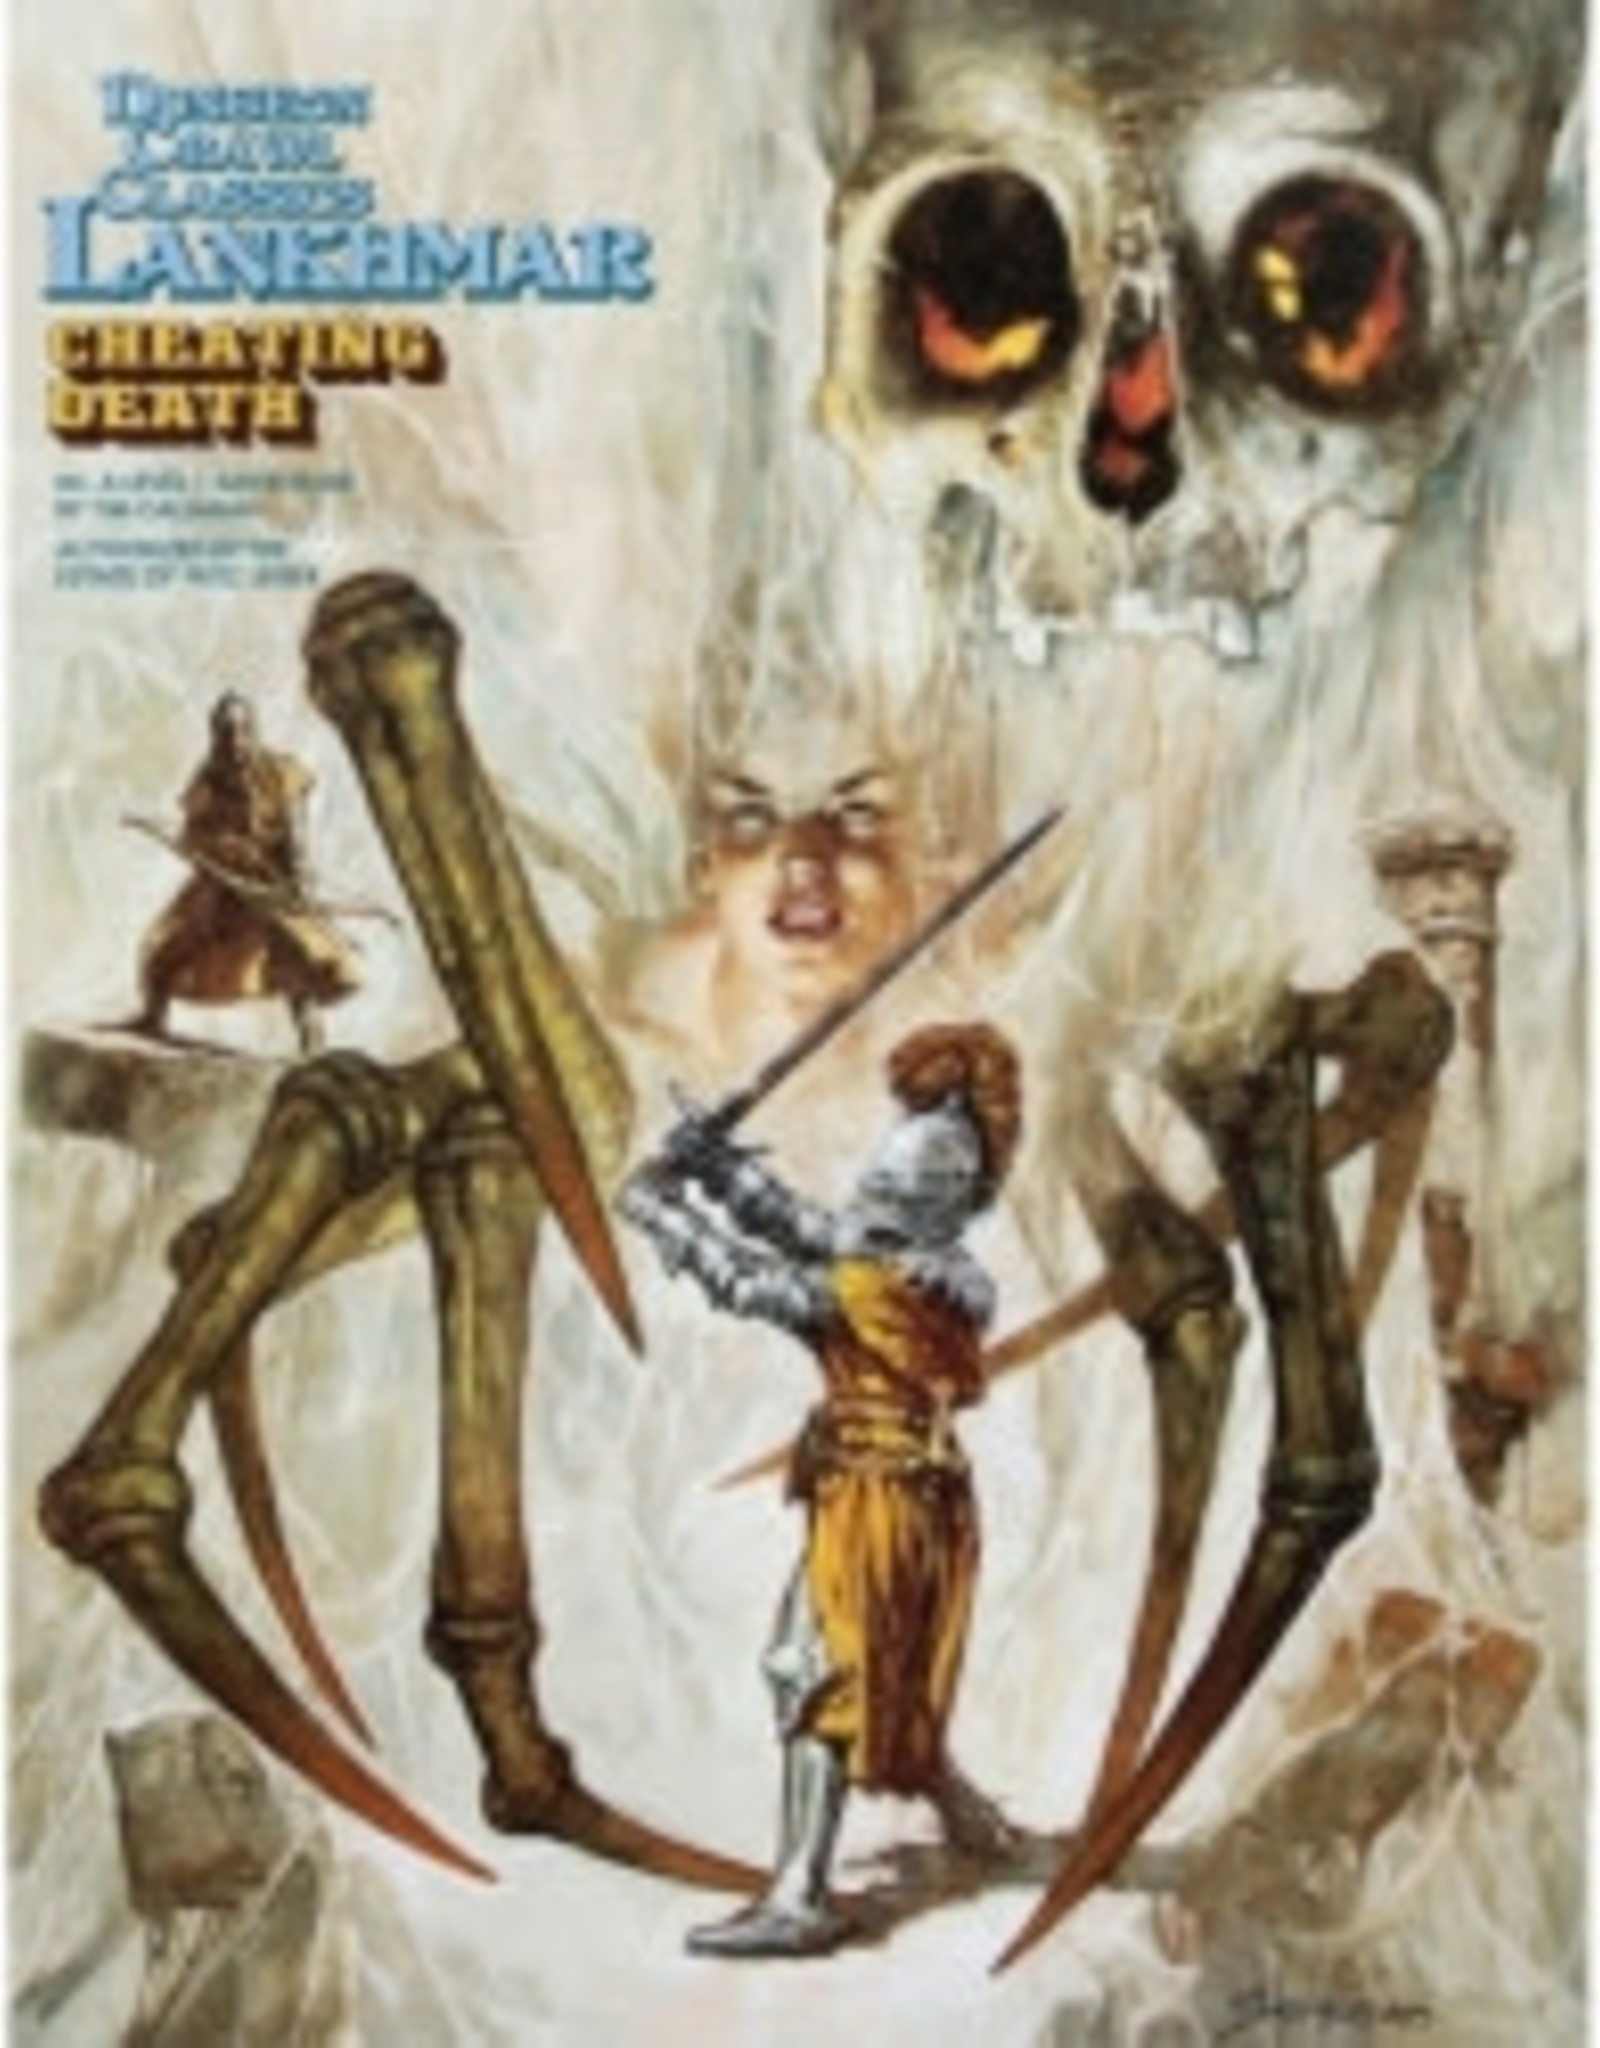 Goodman Games Dungeon Crawl Classics Lankhmar #6 Cheating Death